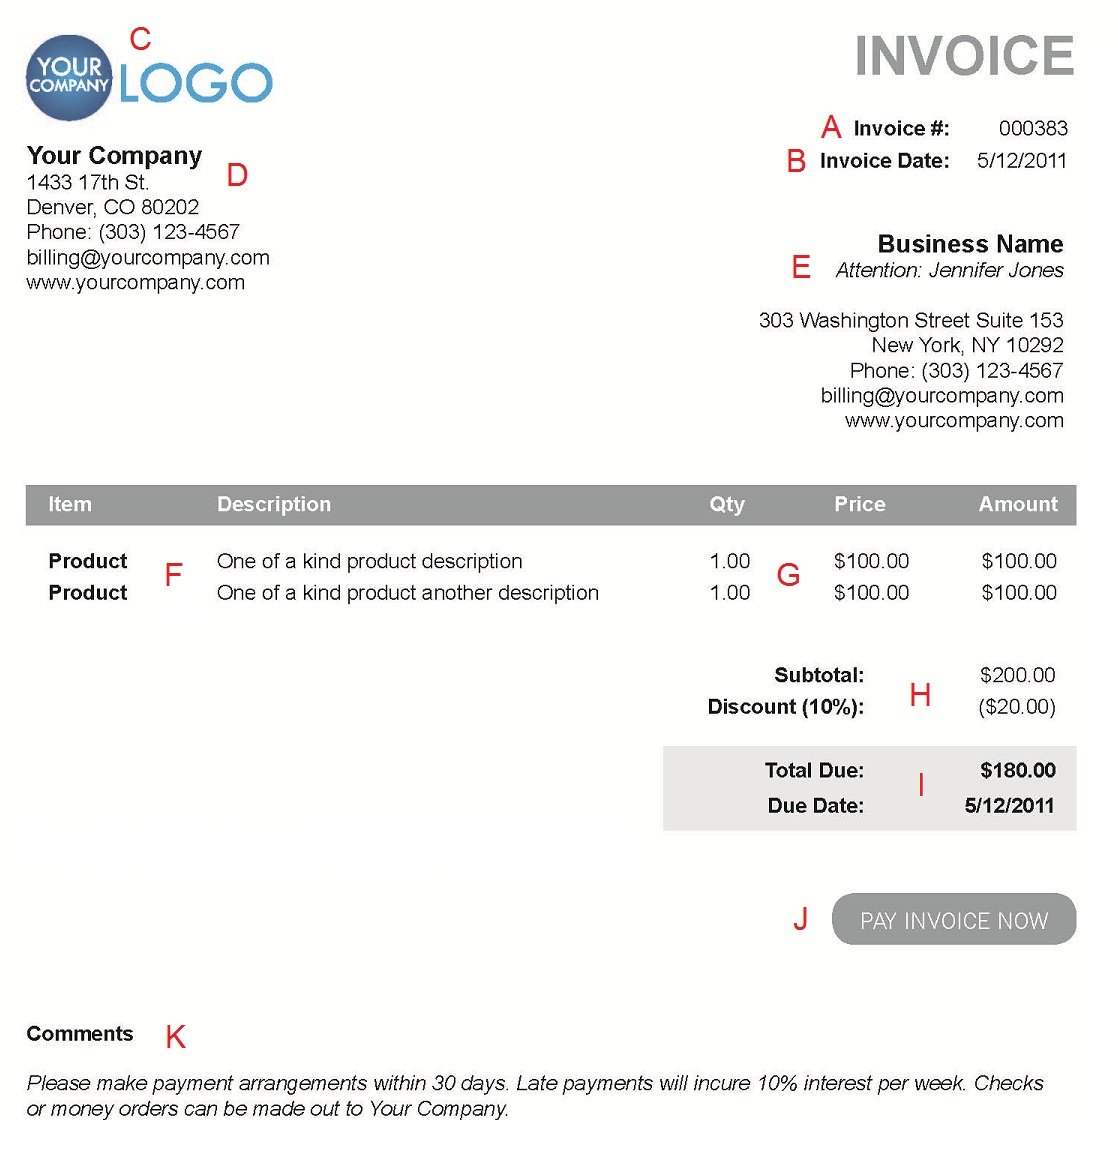 Coachoutletonlineplusus  Winsome The  Different Sections Of An Electronic Payment Invoice With Exciting A  With Beautiful Invoice Factoring Explained Also How To Complete An Invoice In Addition Free Australian Invoice Template And Fedex Invoice Template As Well As Nissan Invoice Additionally Free Printable Blank Invoice Form From Paysimplecom With Coachoutletonlineplusus  Exciting The  Different Sections Of An Electronic Payment Invoice With Beautiful A  And Winsome Invoice Factoring Explained Also How To Complete An Invoice In Addition Free Australian Invoice Template From Paysimplecom